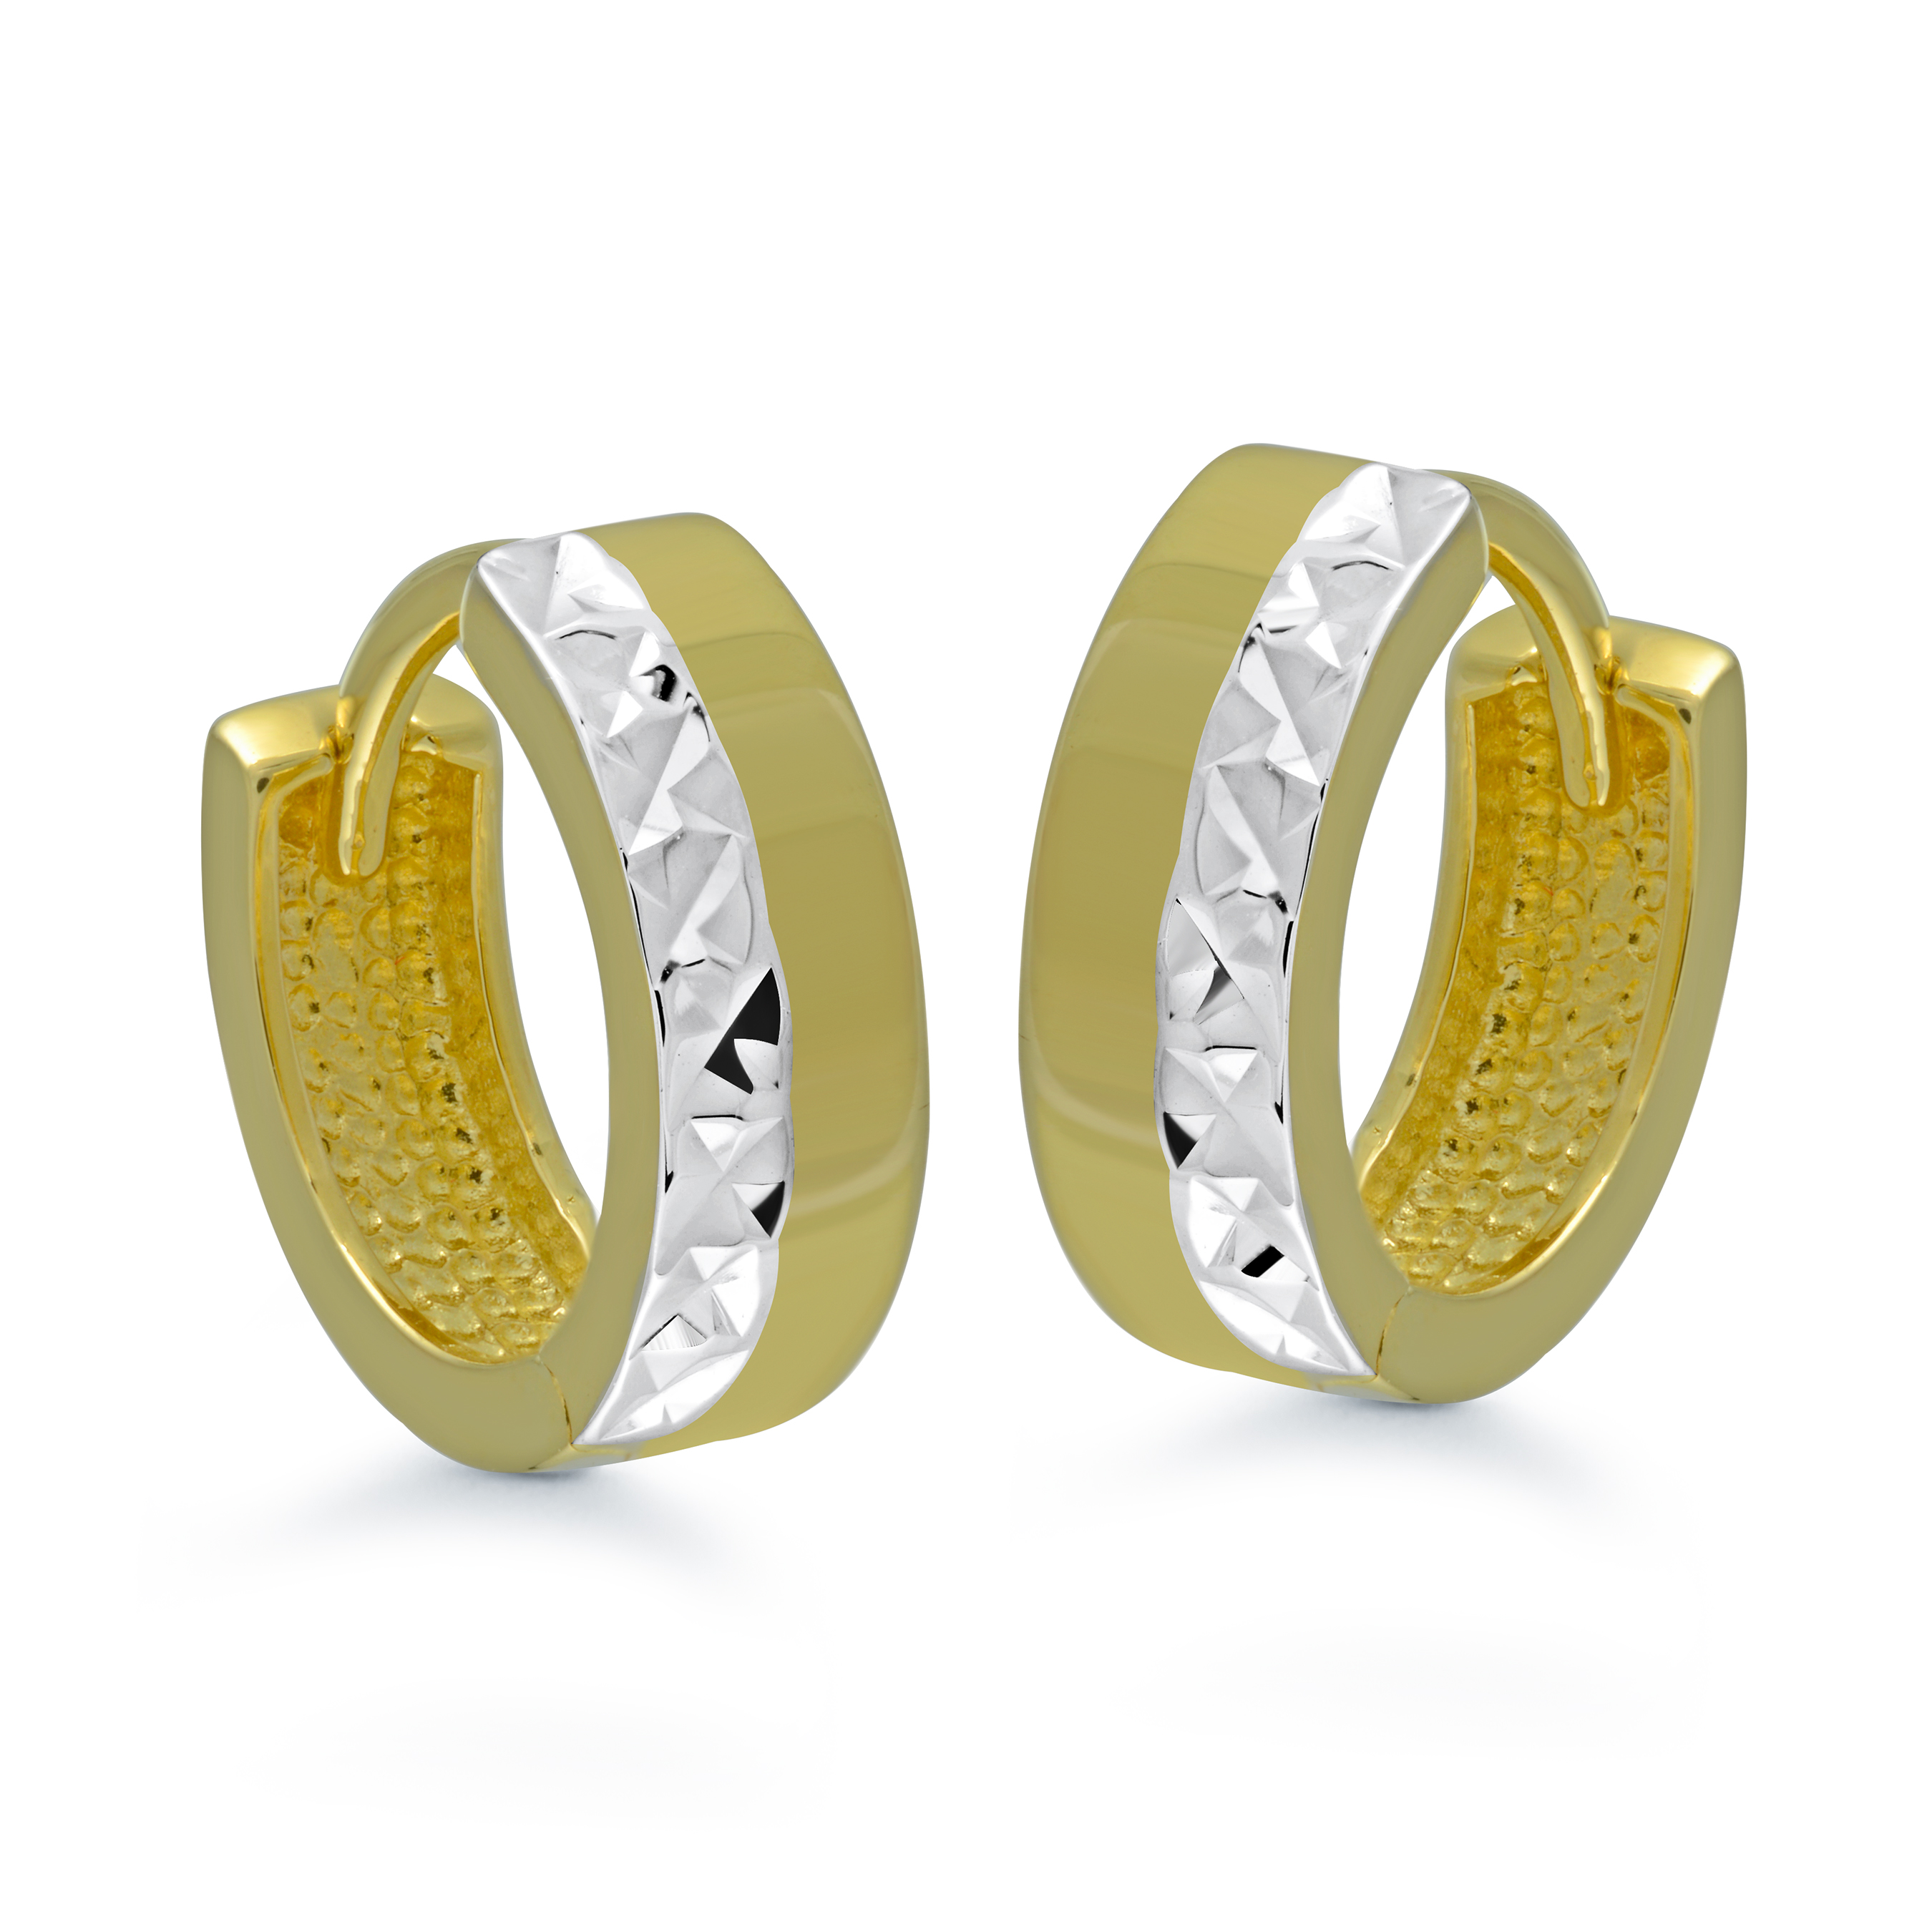 Hoop earrings for women - 10K 2-tone Gold (yellow and white)